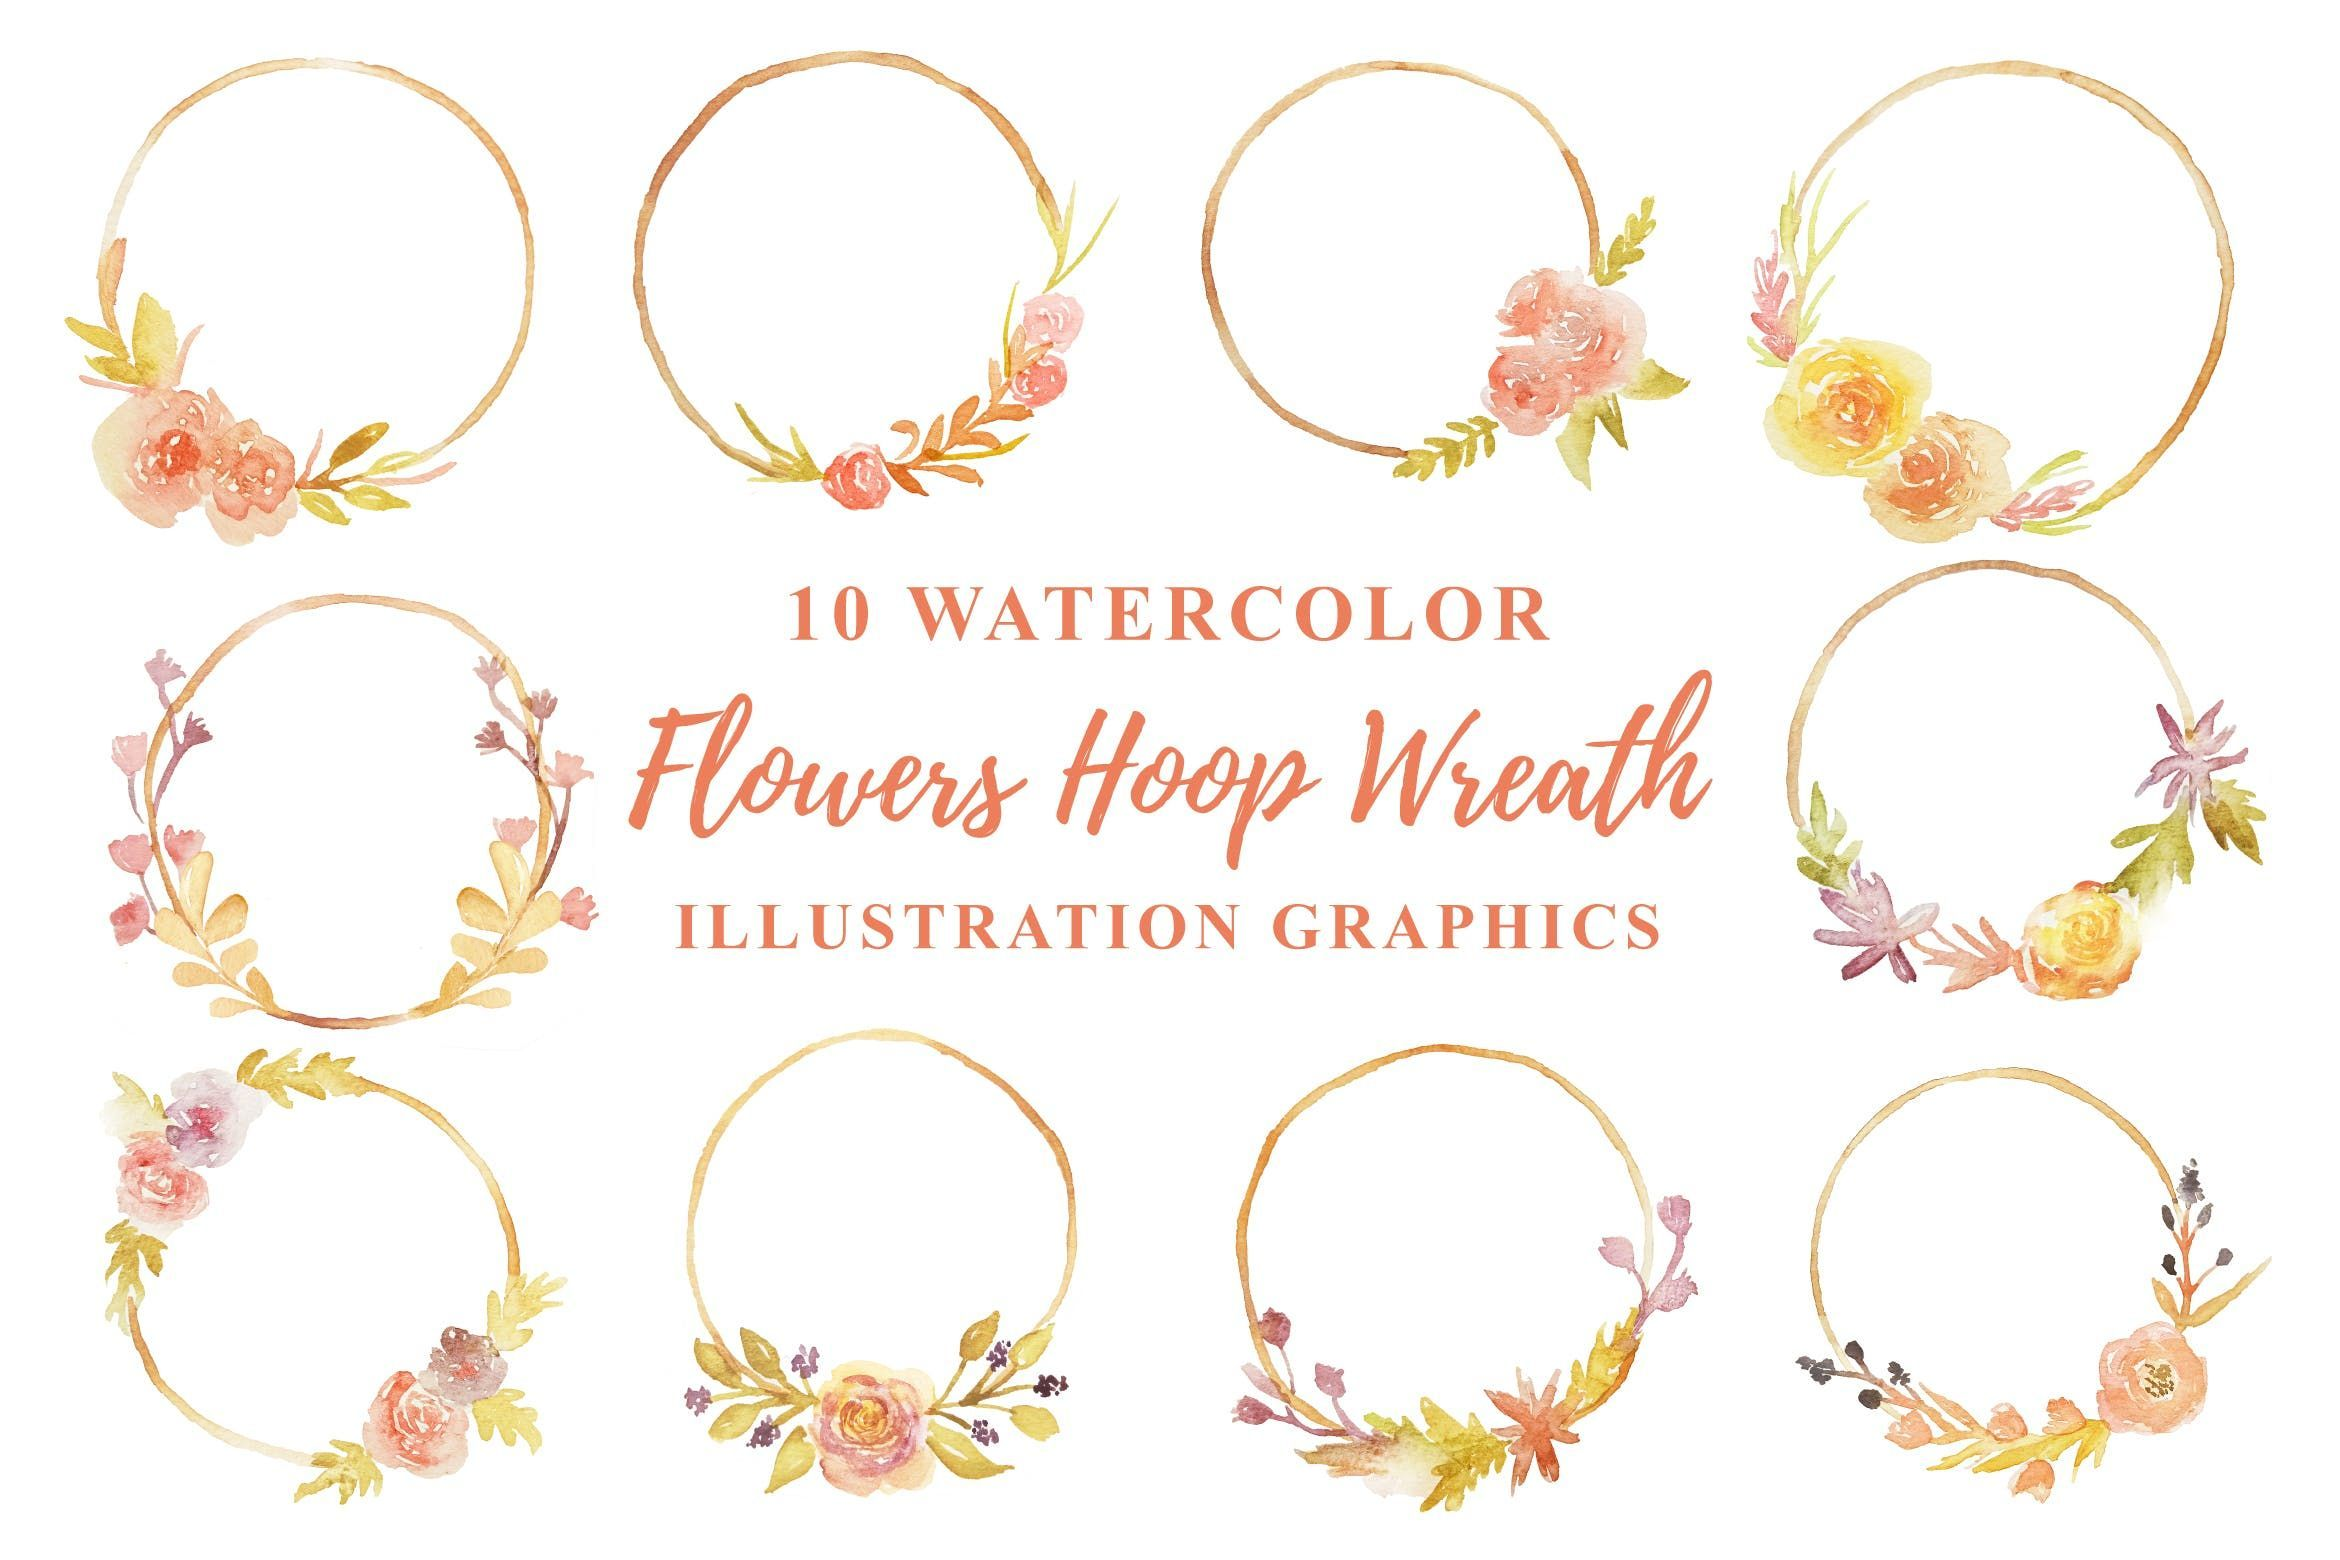 Photo of 10 Watercolor Flowers Hoop Wreath Illustration by IanMikraz on Envato Elements